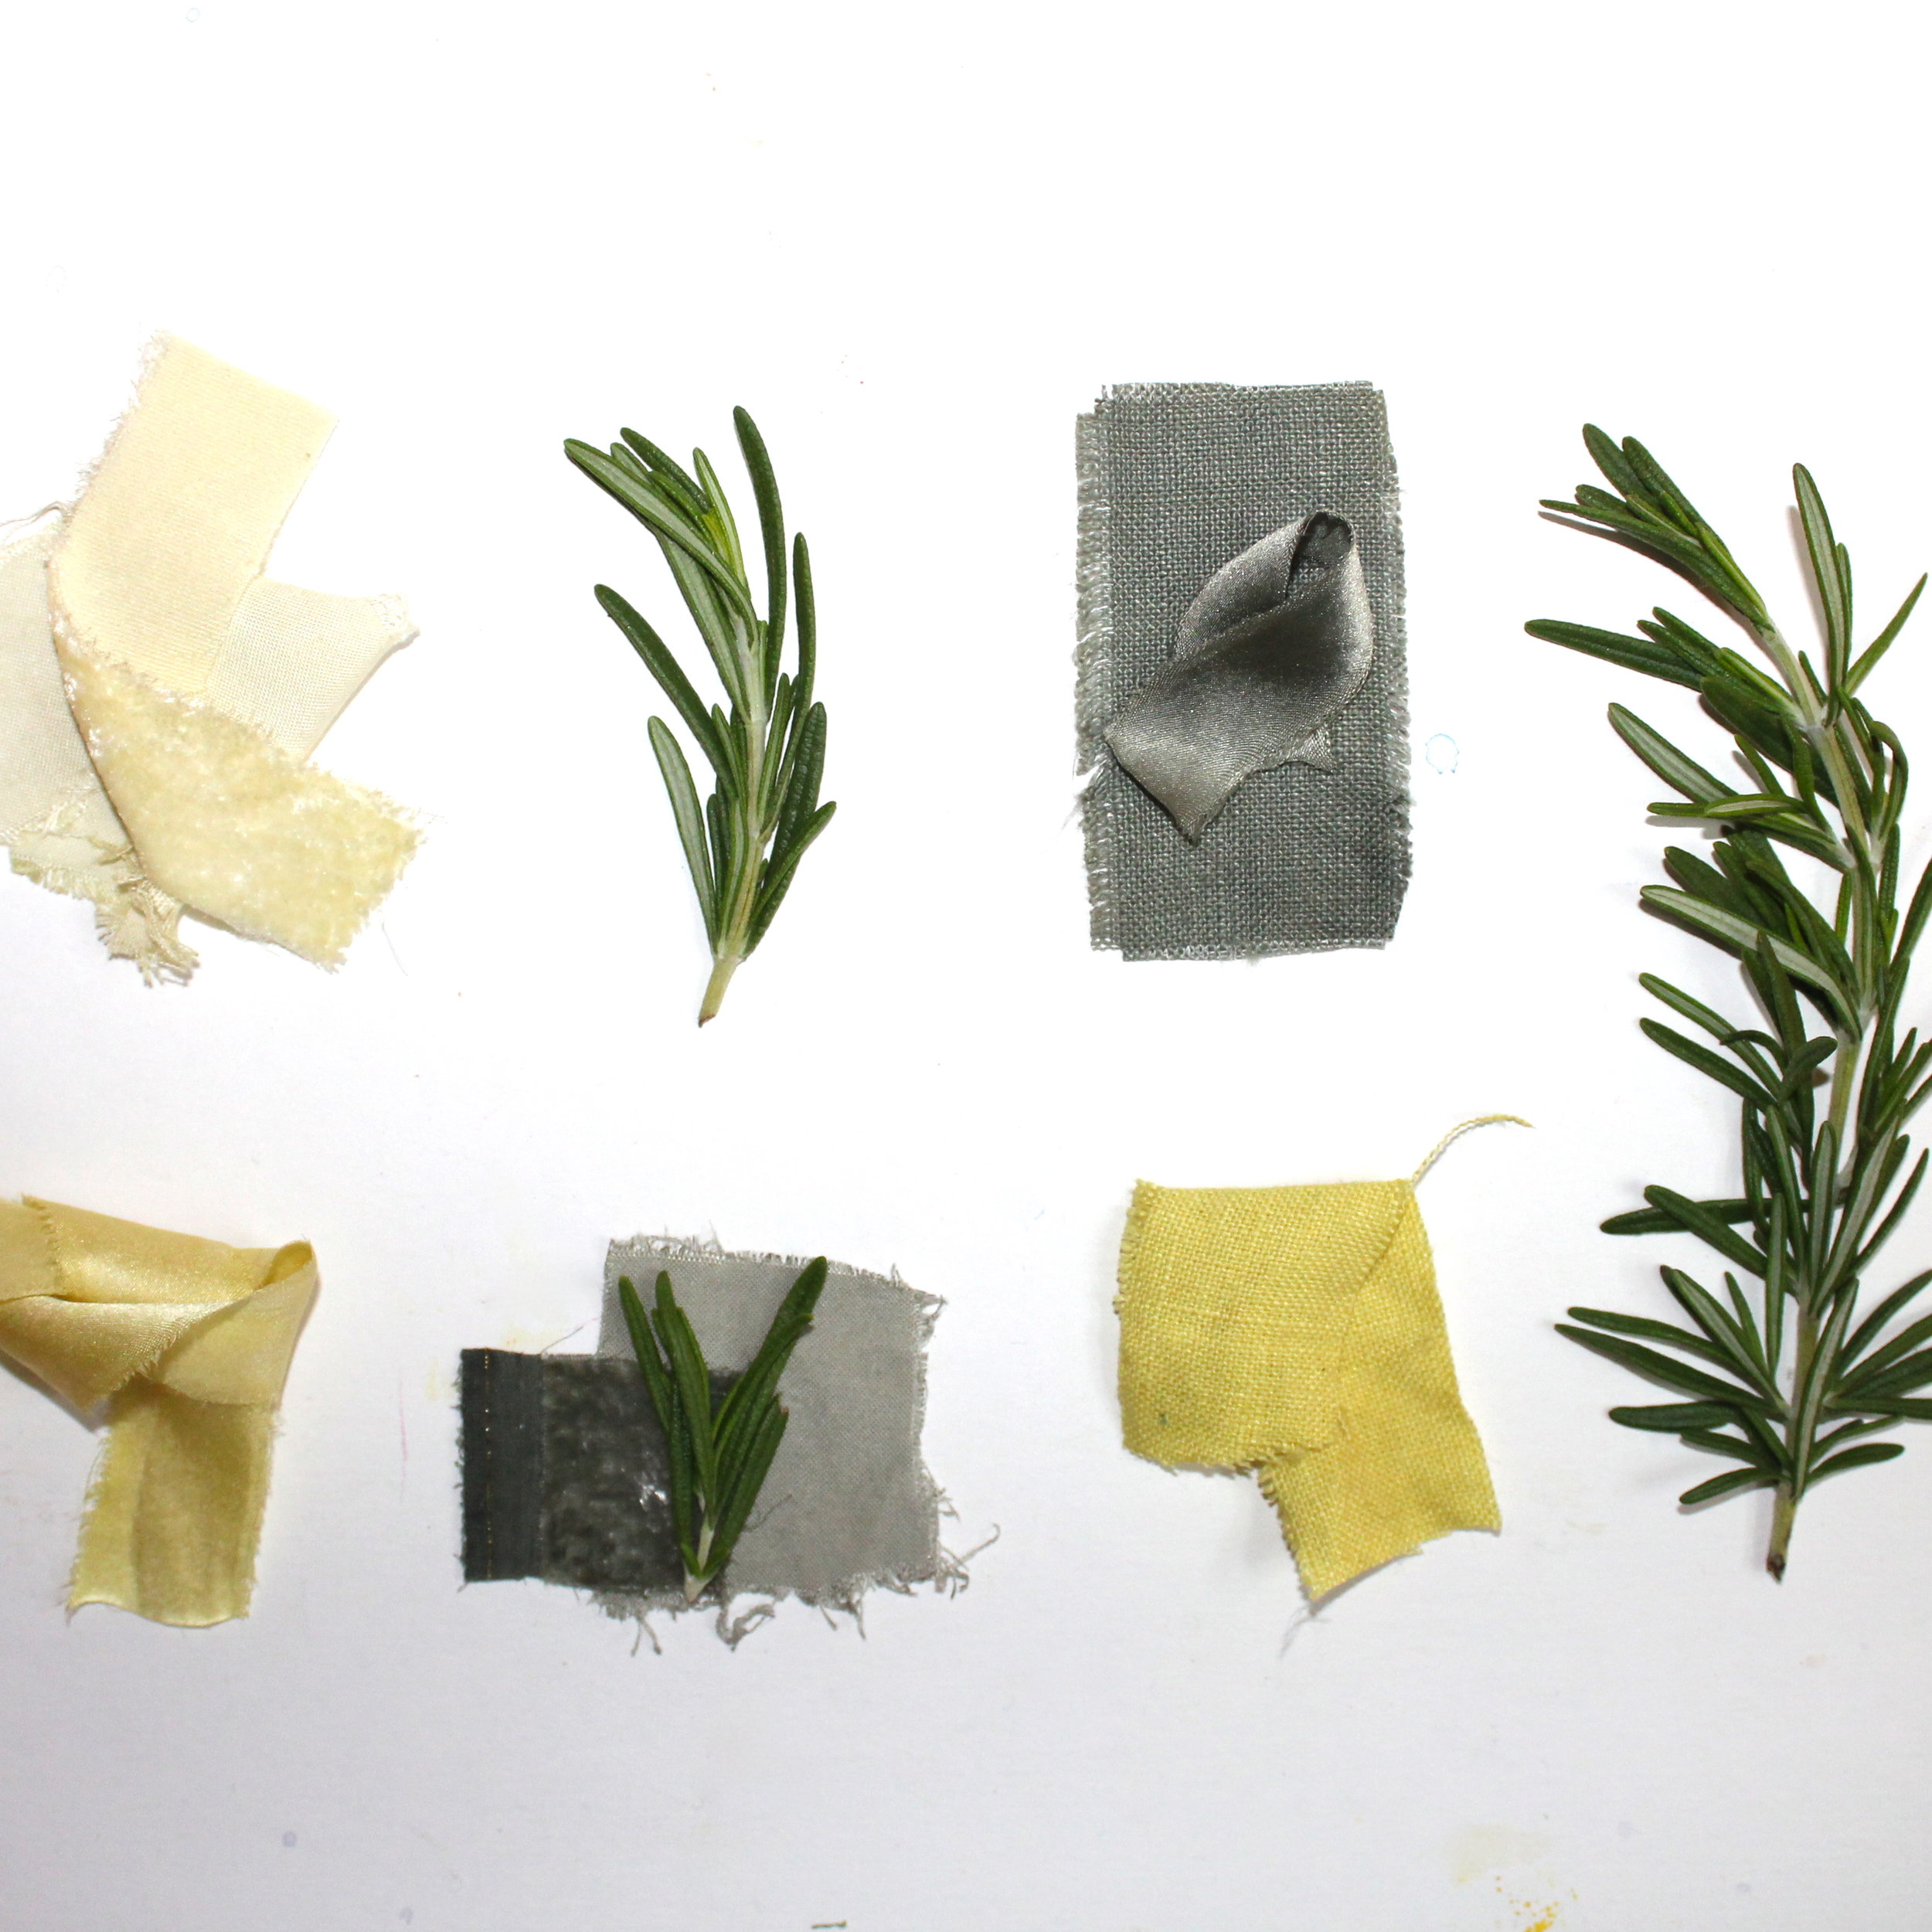 Rosemary  The leaves of the rosemary plant can be used to make a yellow green dye. When iron is added as a modifier, you can achieve a grayish, sage green color.